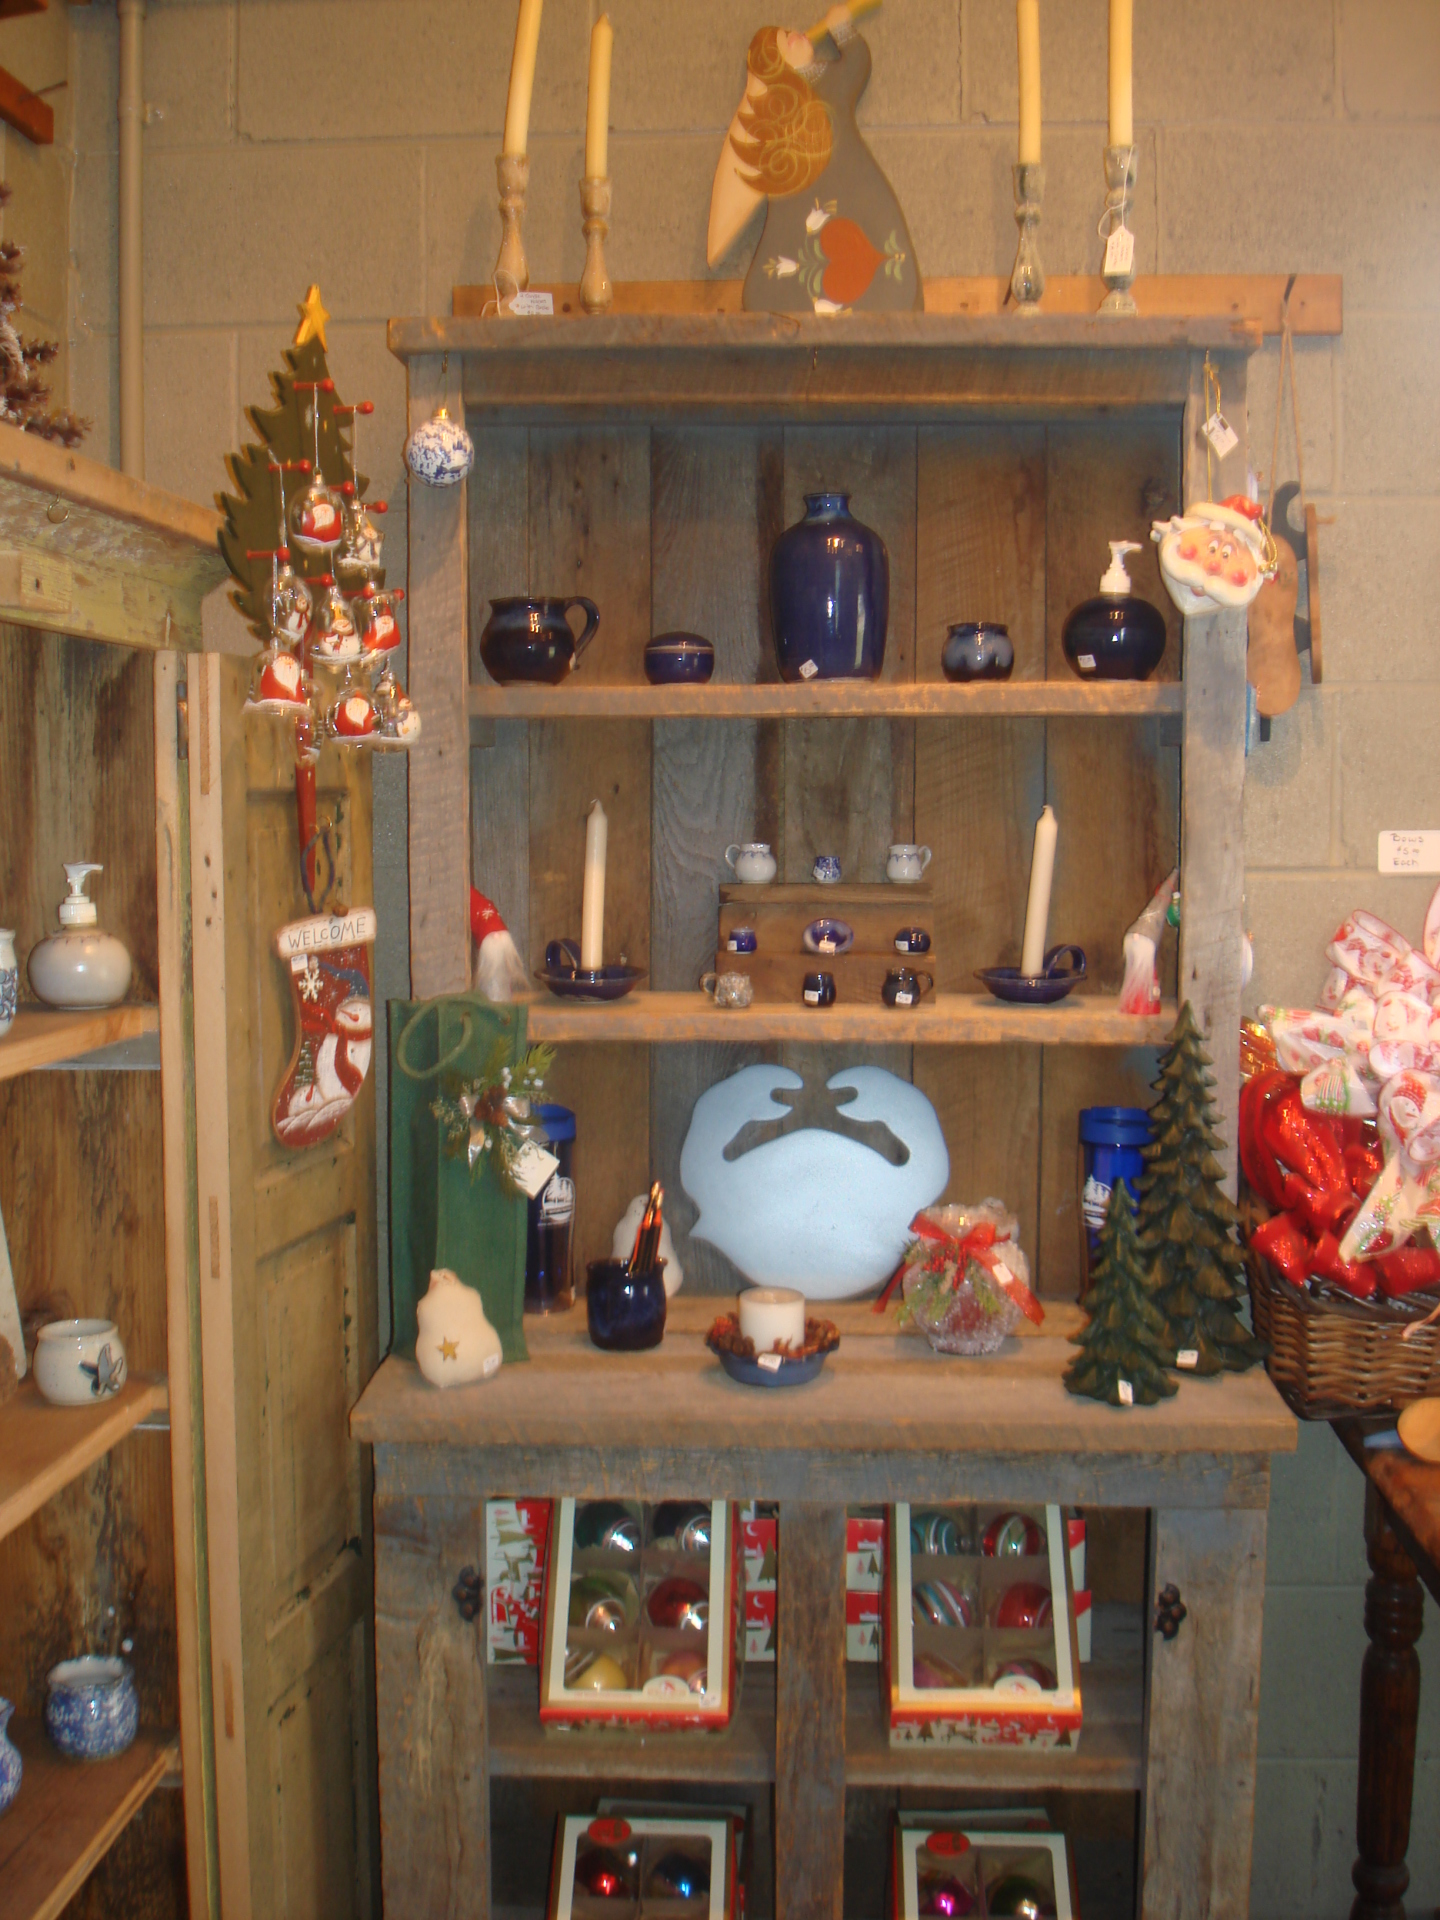 Shelves filled with various gift items